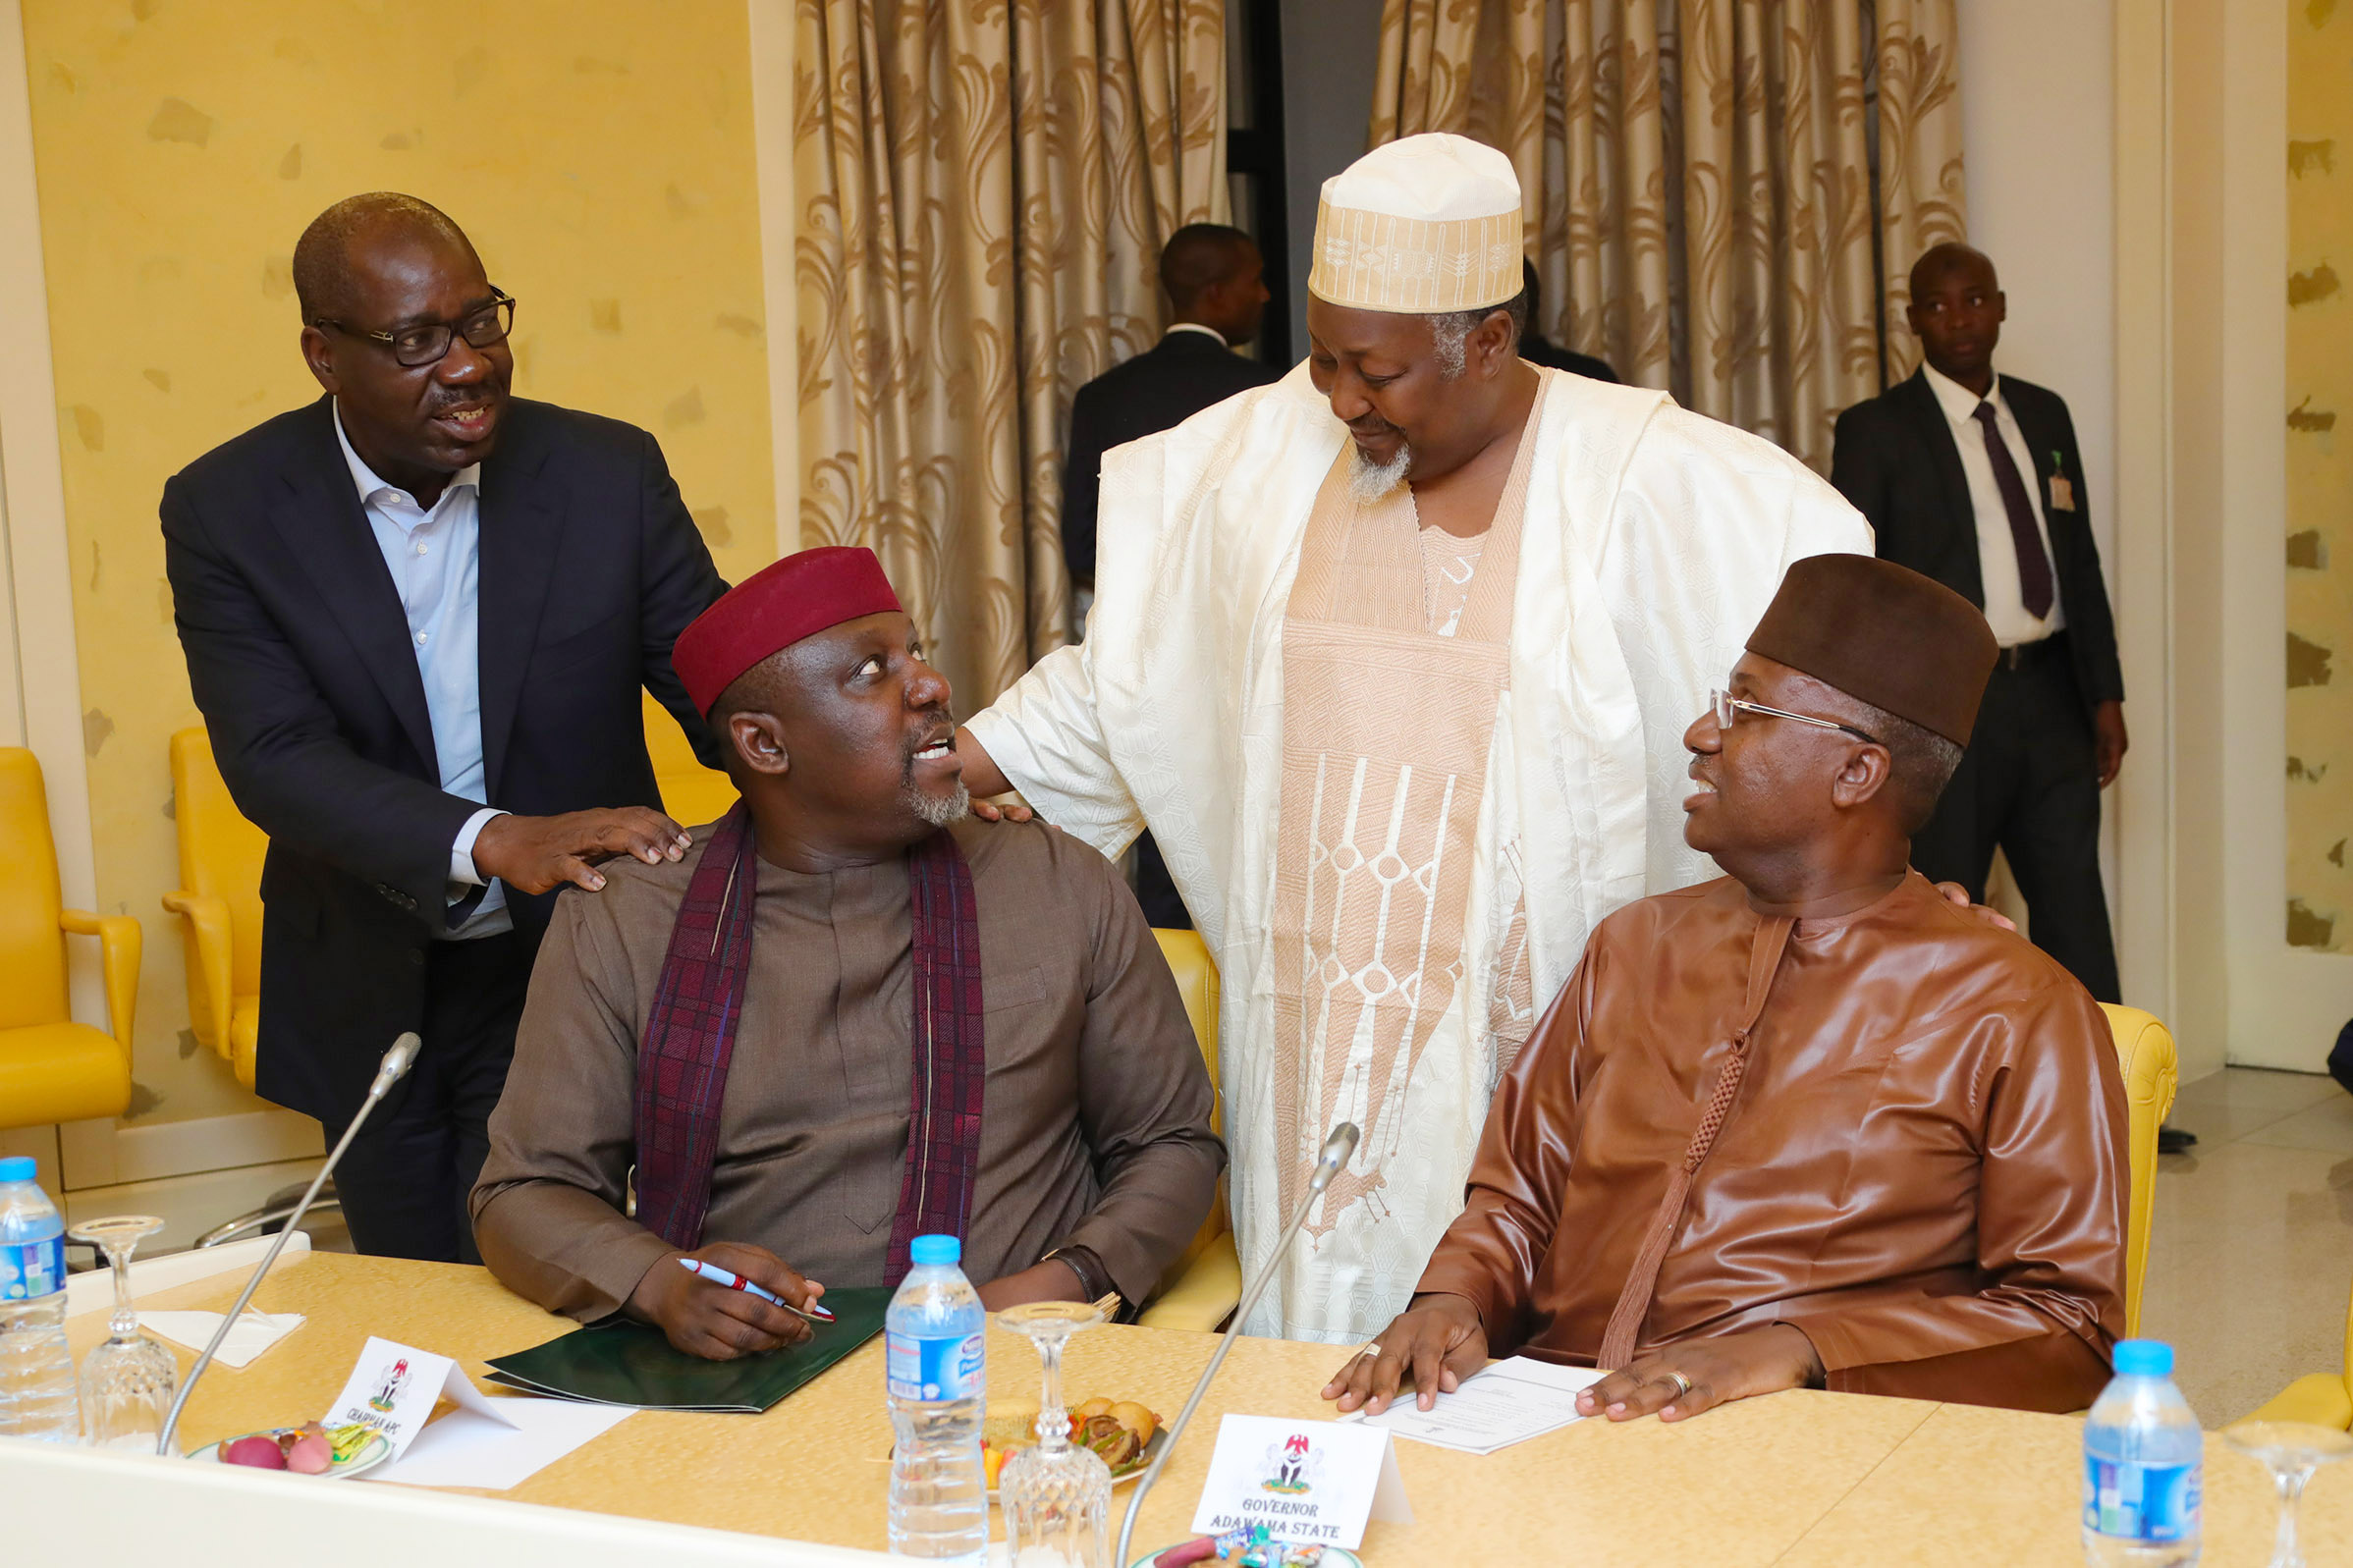 PRESIDENT BUHARI MEETS APC GOVERNORS 10. L-R; Edo State Governor, Godwin Obaseki, Governor of Imo State Owelle Rochas Okorocha, Governor of Jigawa State, Alhaji Mohammed Badaru Abubakar and Governor of Bauchi State, Alhaji Mohammed Abdullahi Abubakar during an audience with APC Governors' Forum Tuesday Night at the State House in Abuja. PHOTO; SUNDAY AGHAEZE. JUNE 13 2018.